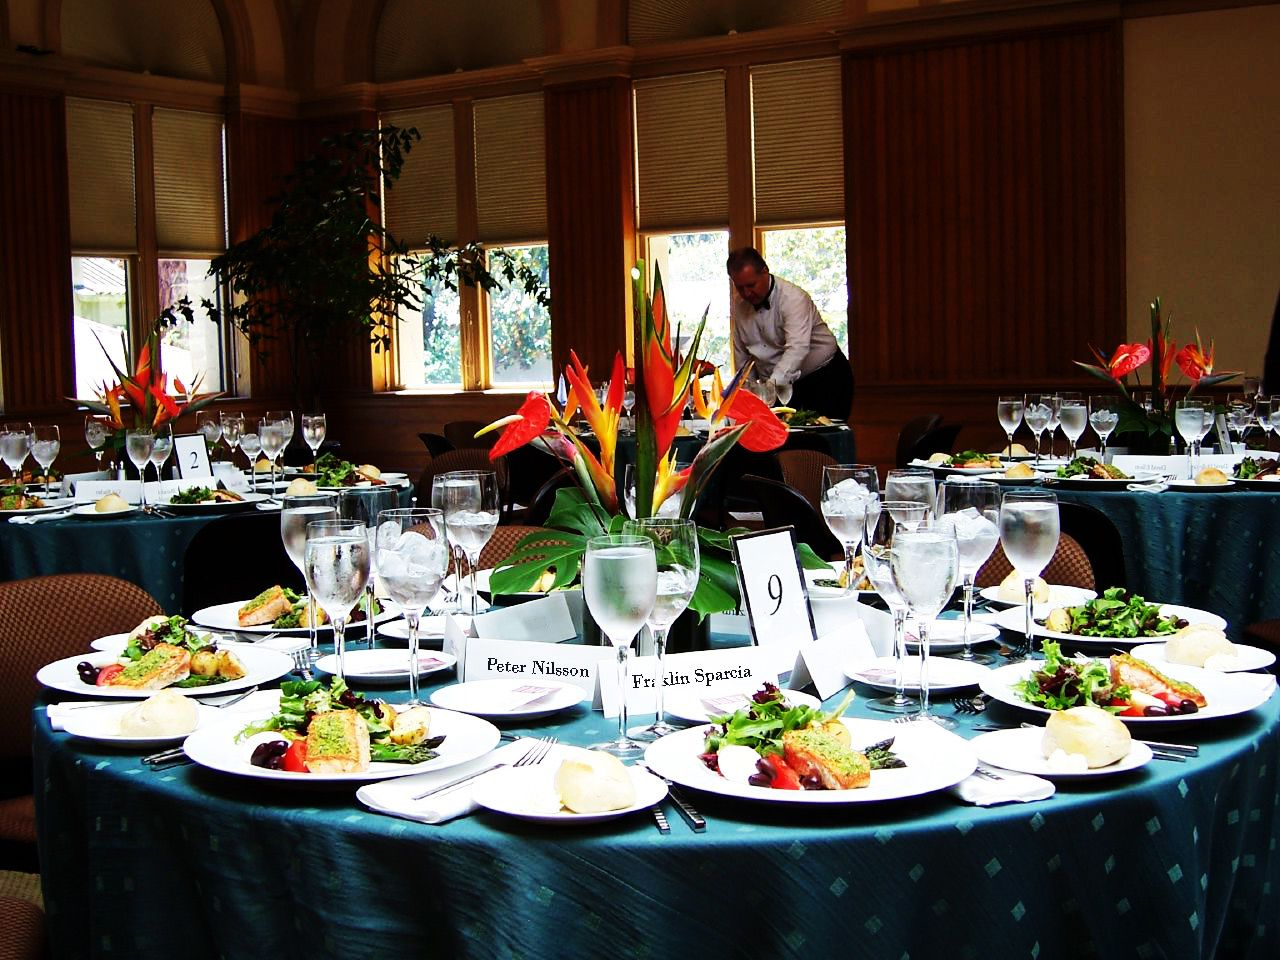 Wedding Catering In NYC On Your Day Are You Looking For Someone That